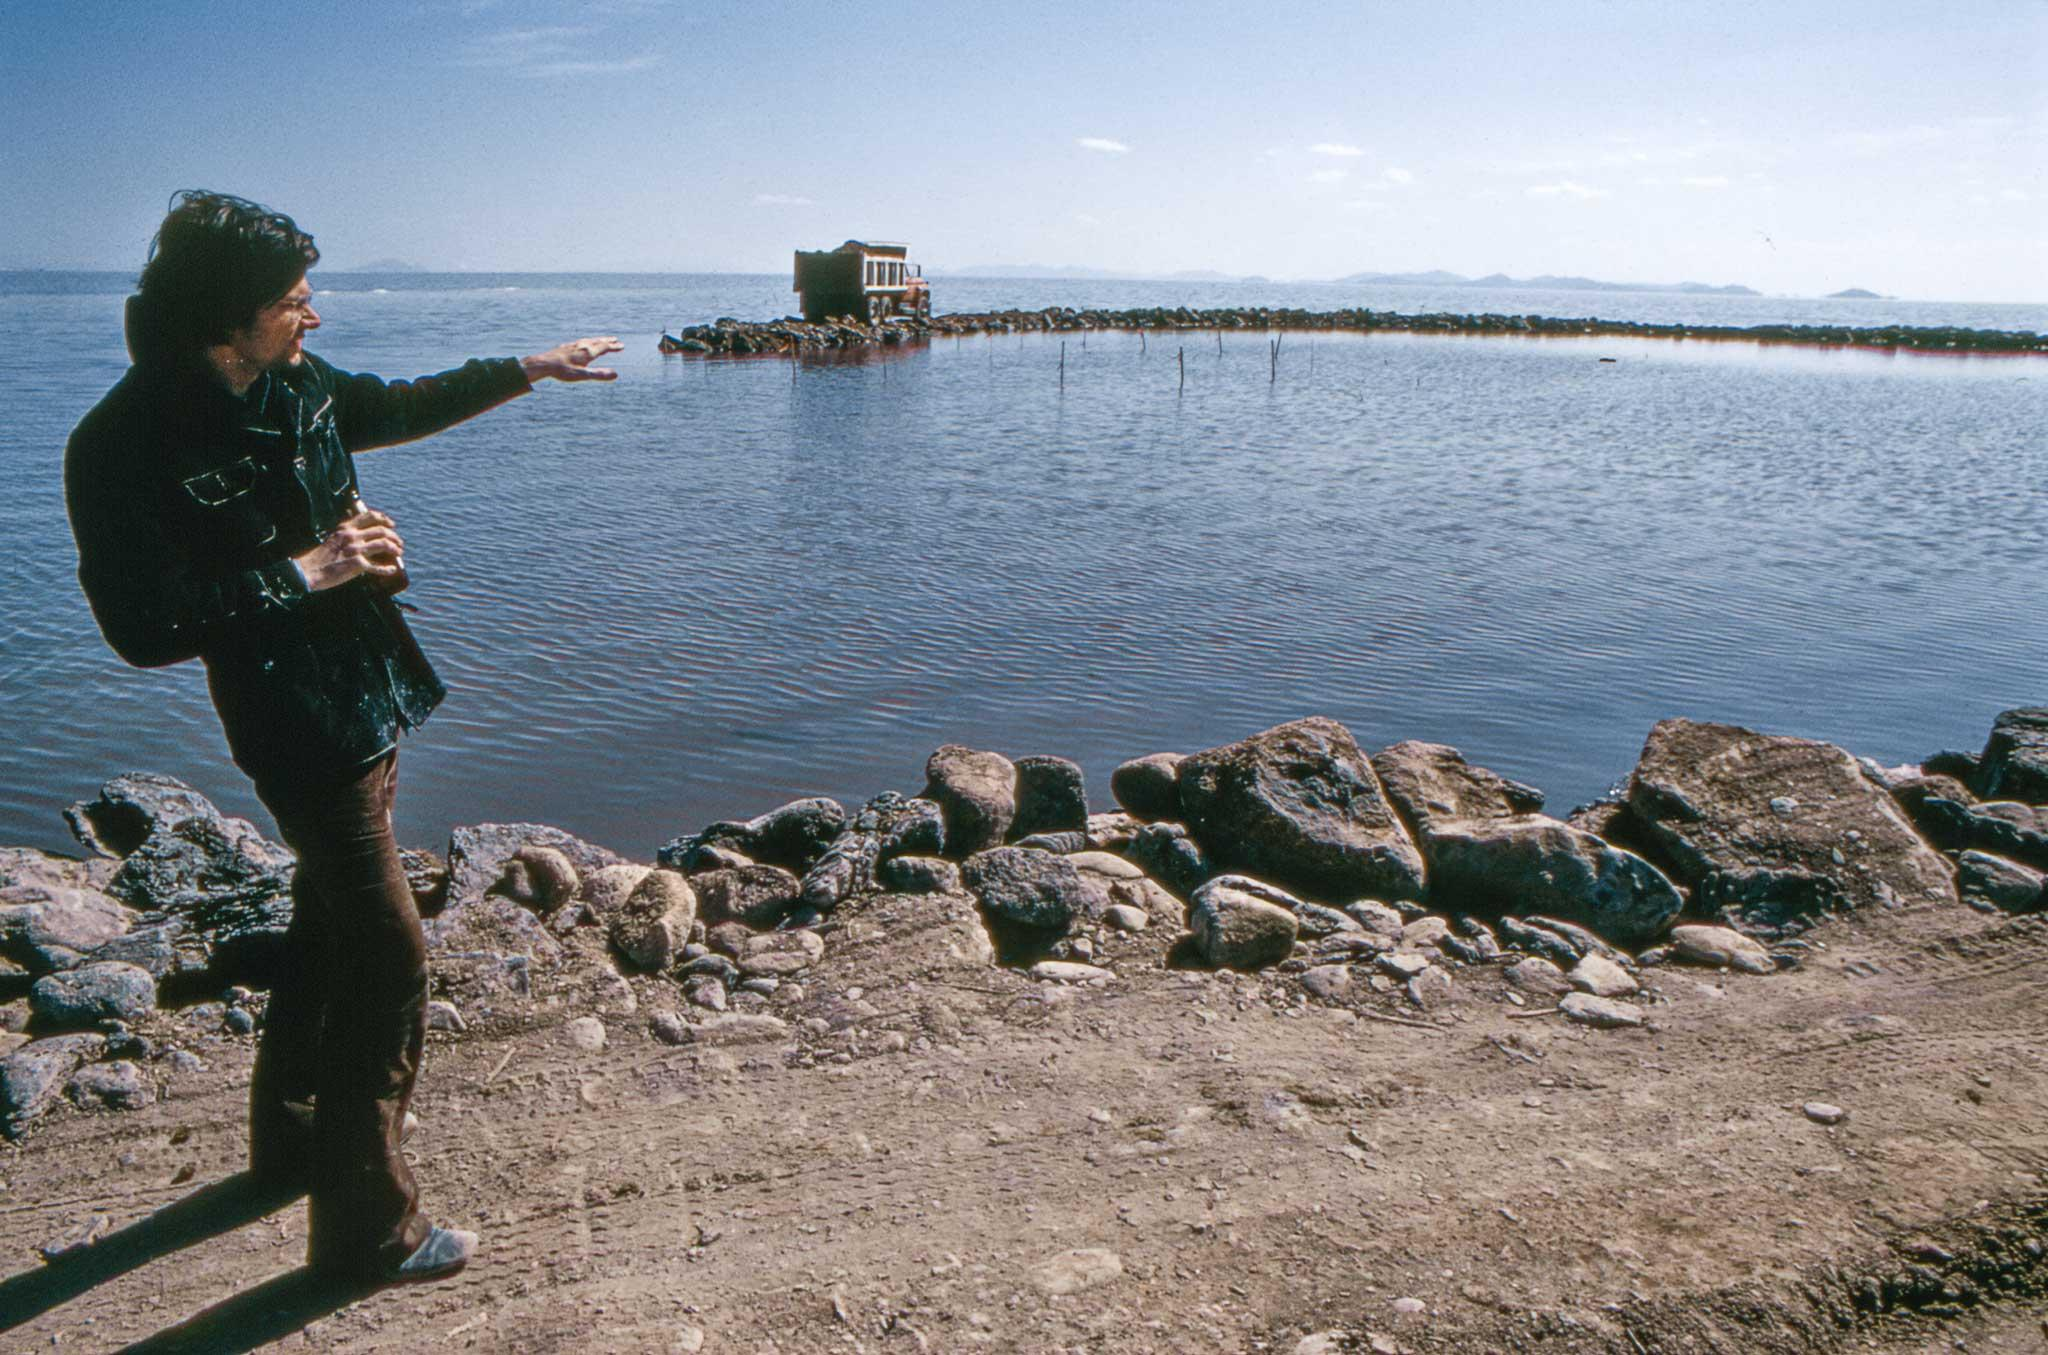 Man standing on the left side of the frame gesturing toward a jetty of land and a truck on the water